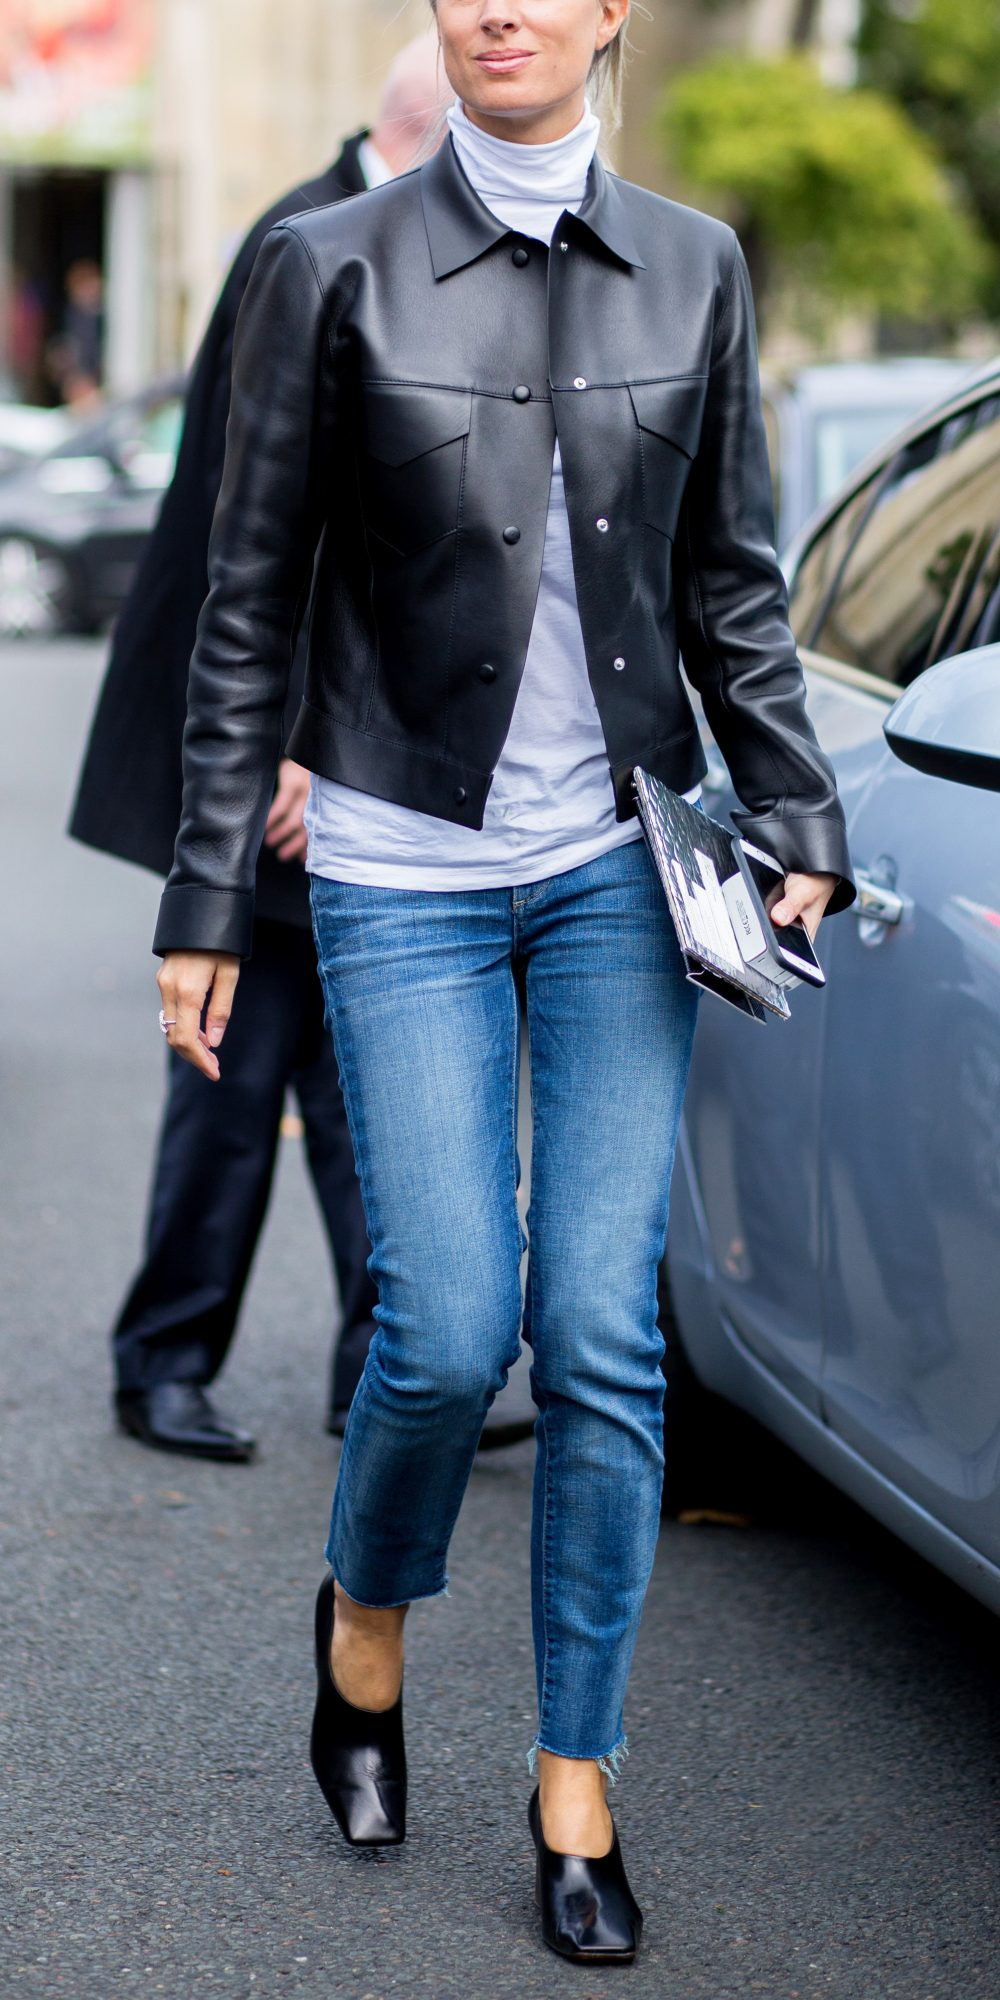 How To Wear A Leather Jacket Instyle Com